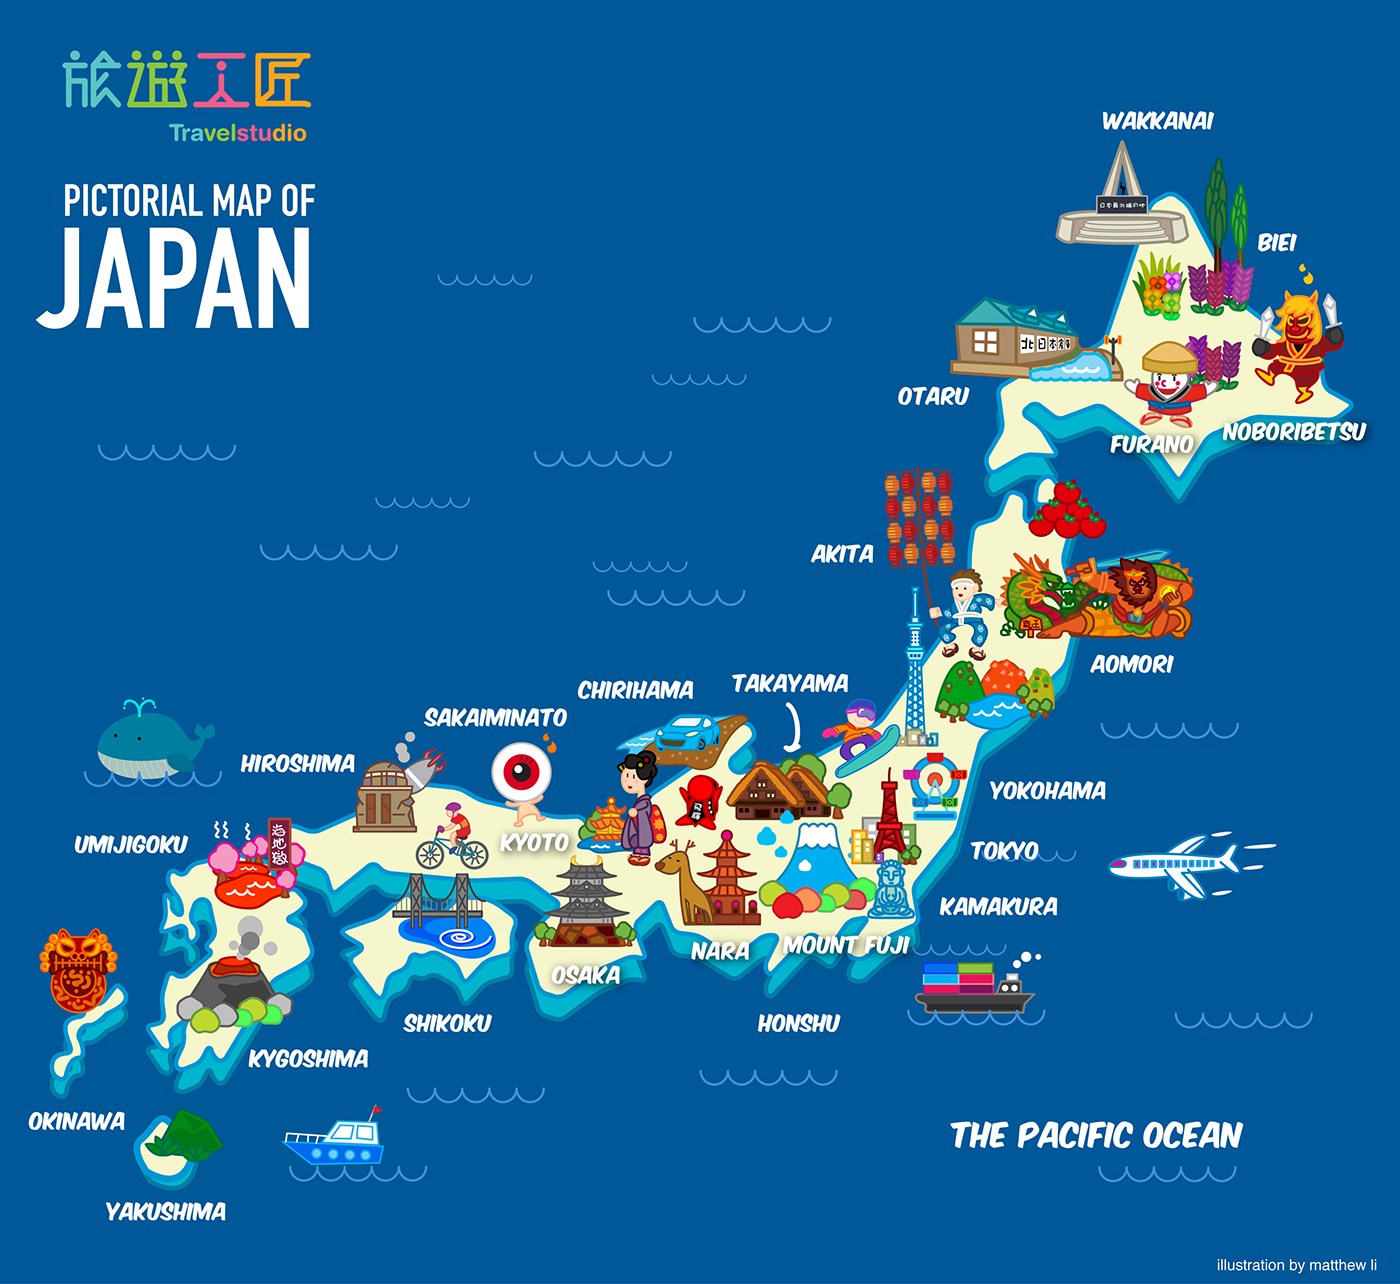 Pictorial Map of Japan on Behance